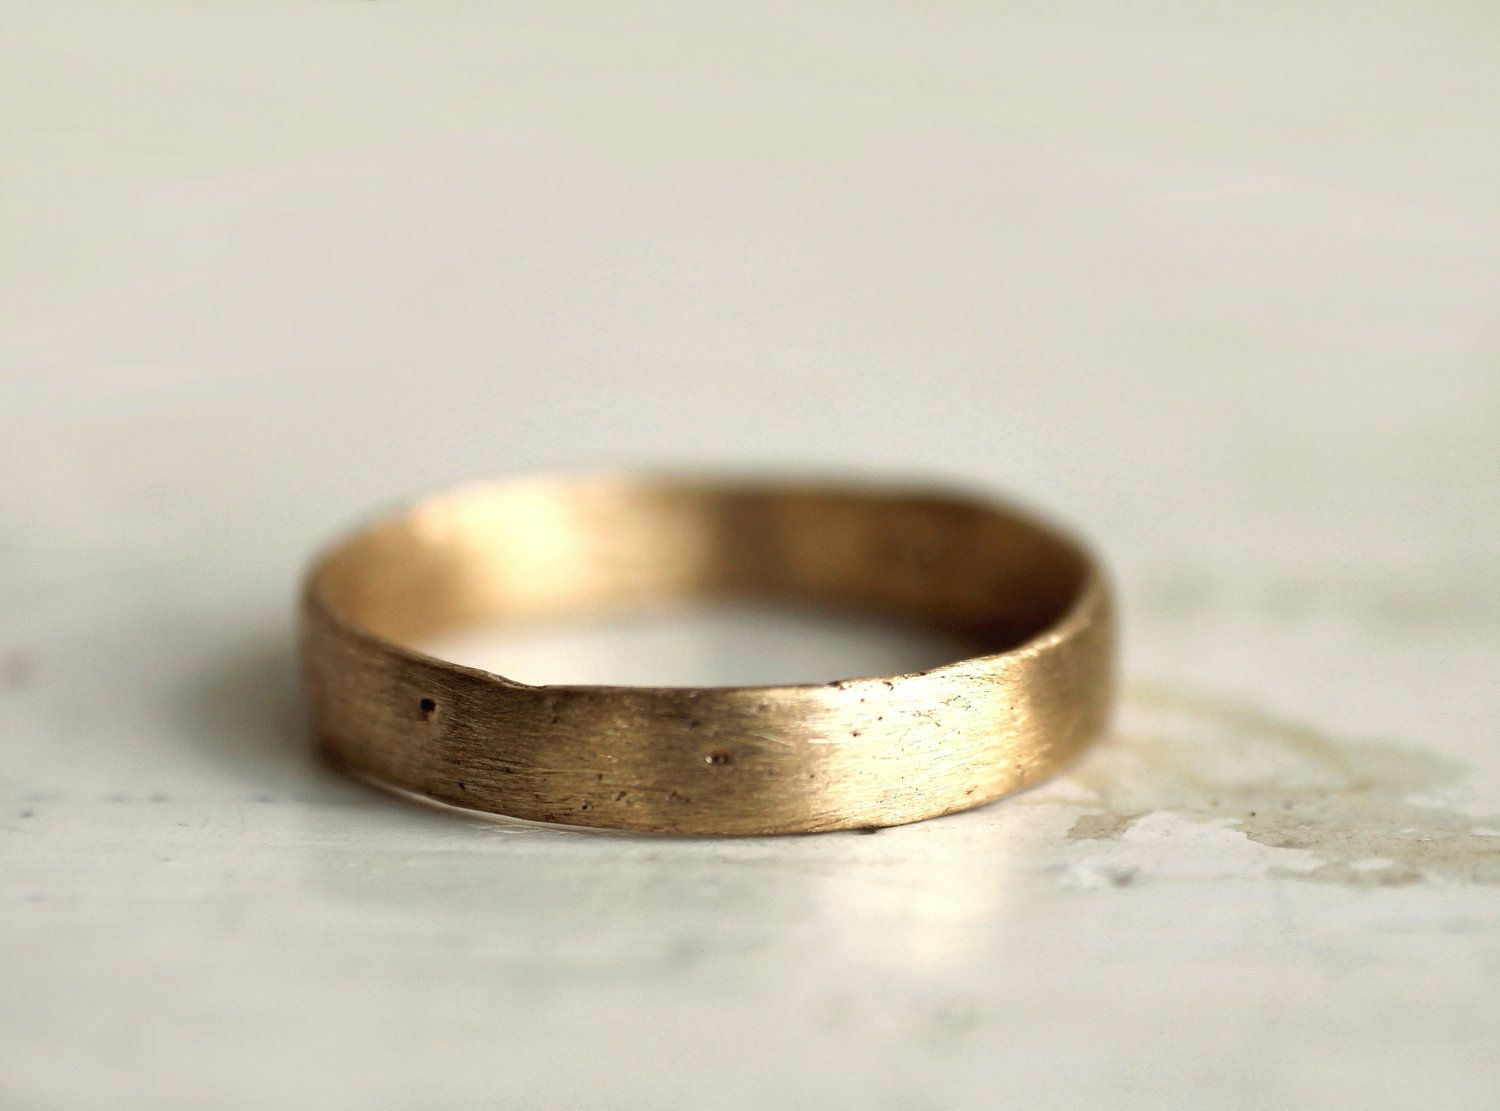 A Rustic Gold Wedding Band 18k Lulu Etsy In 2020 Wedding Ring Bands Gold Wedding Band Wedding Bands